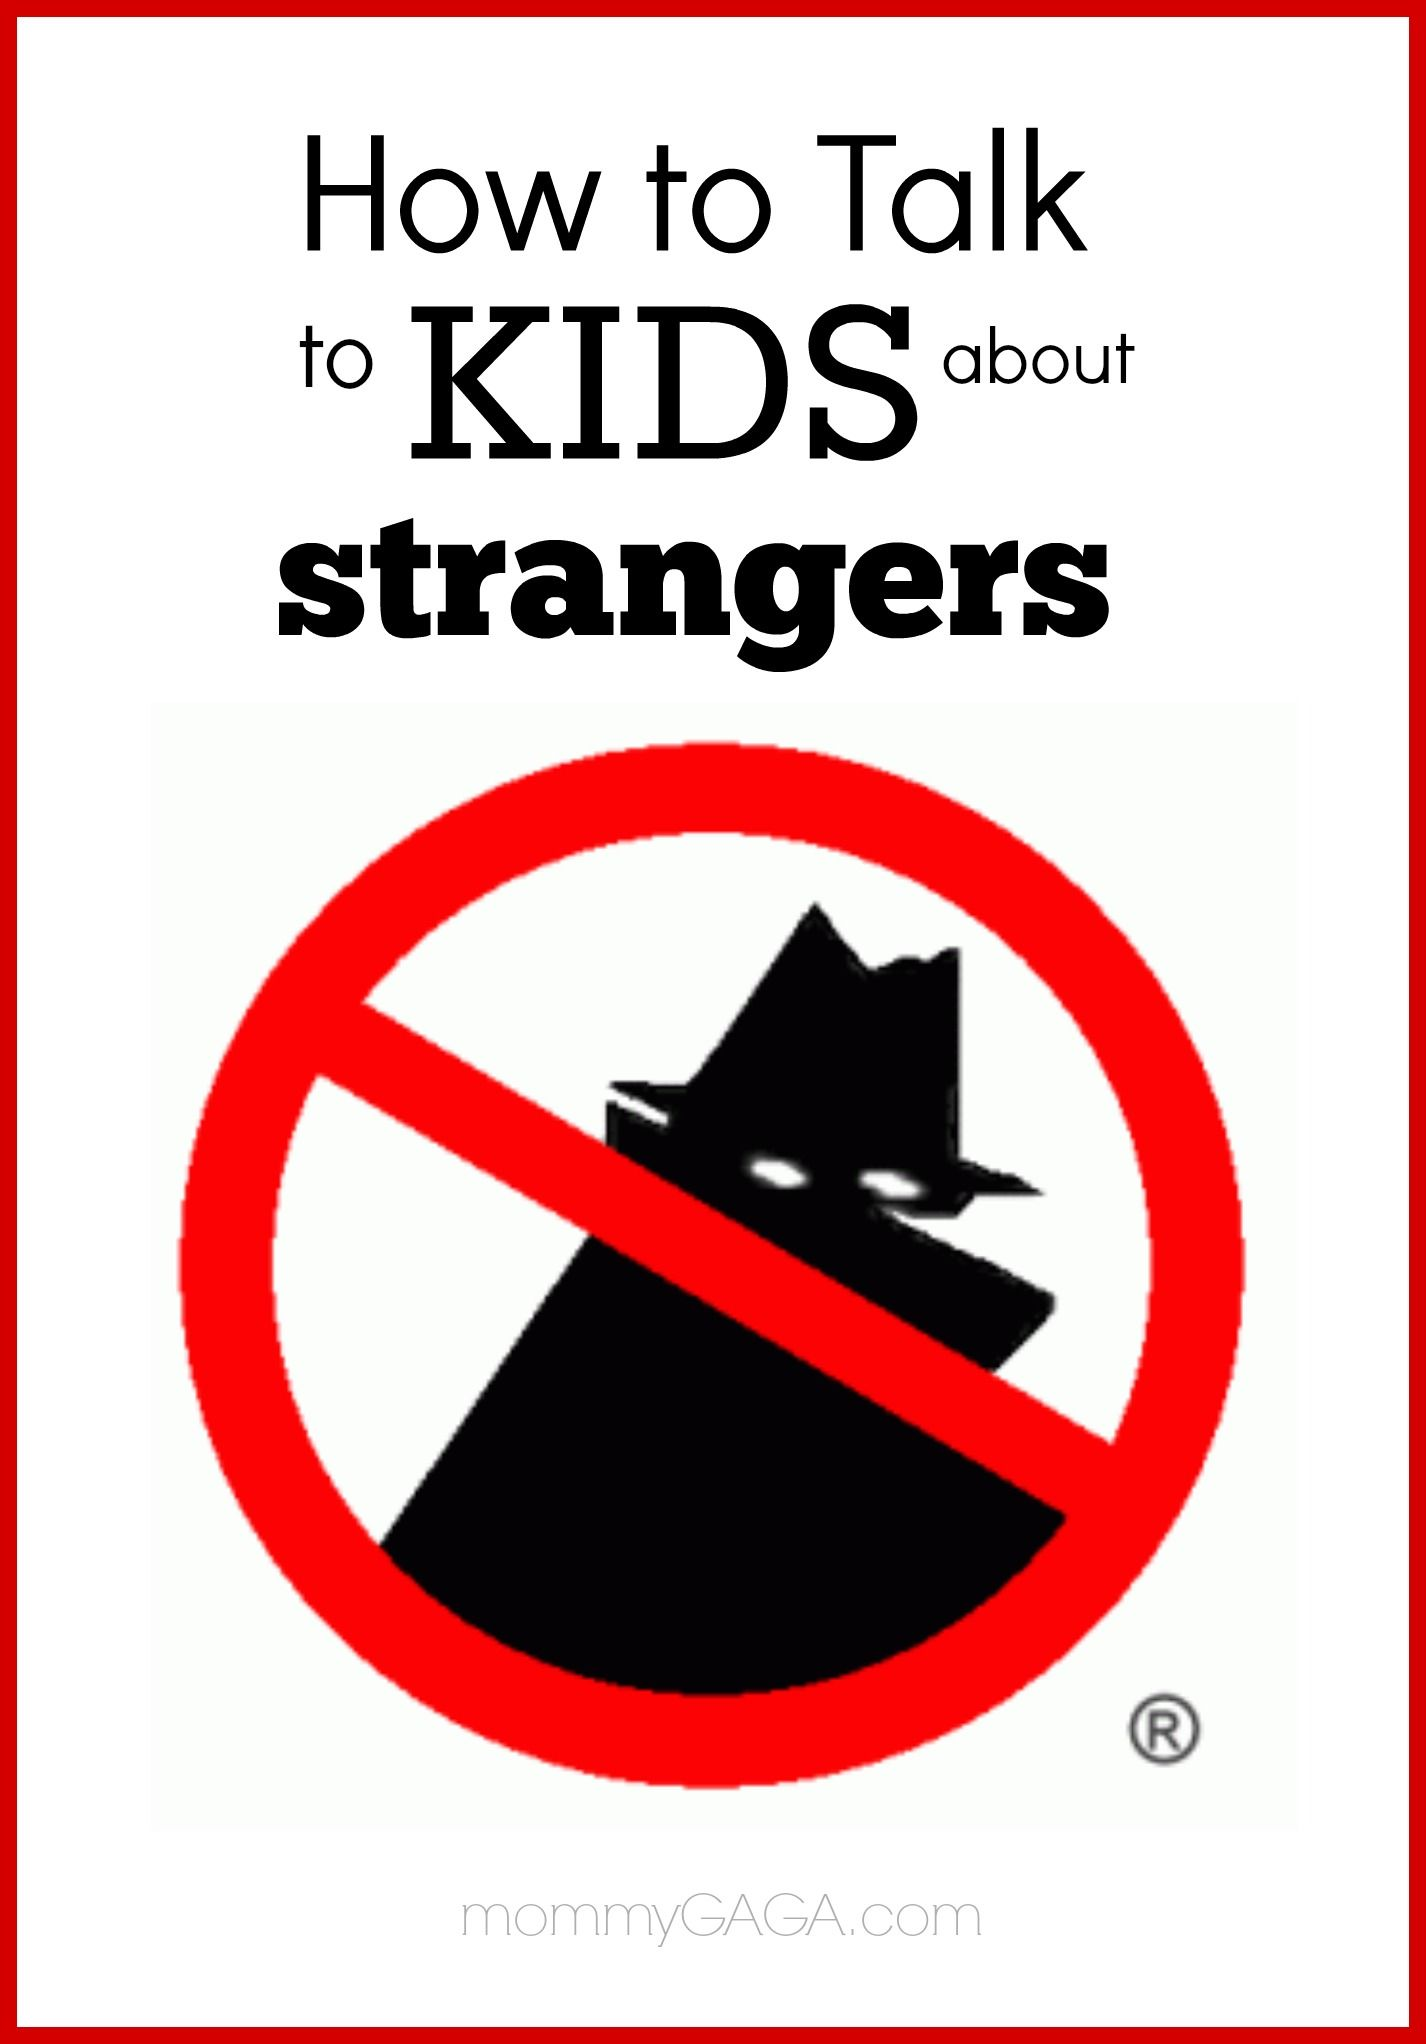 Danger clipart don t talk to stranger. How kids about important